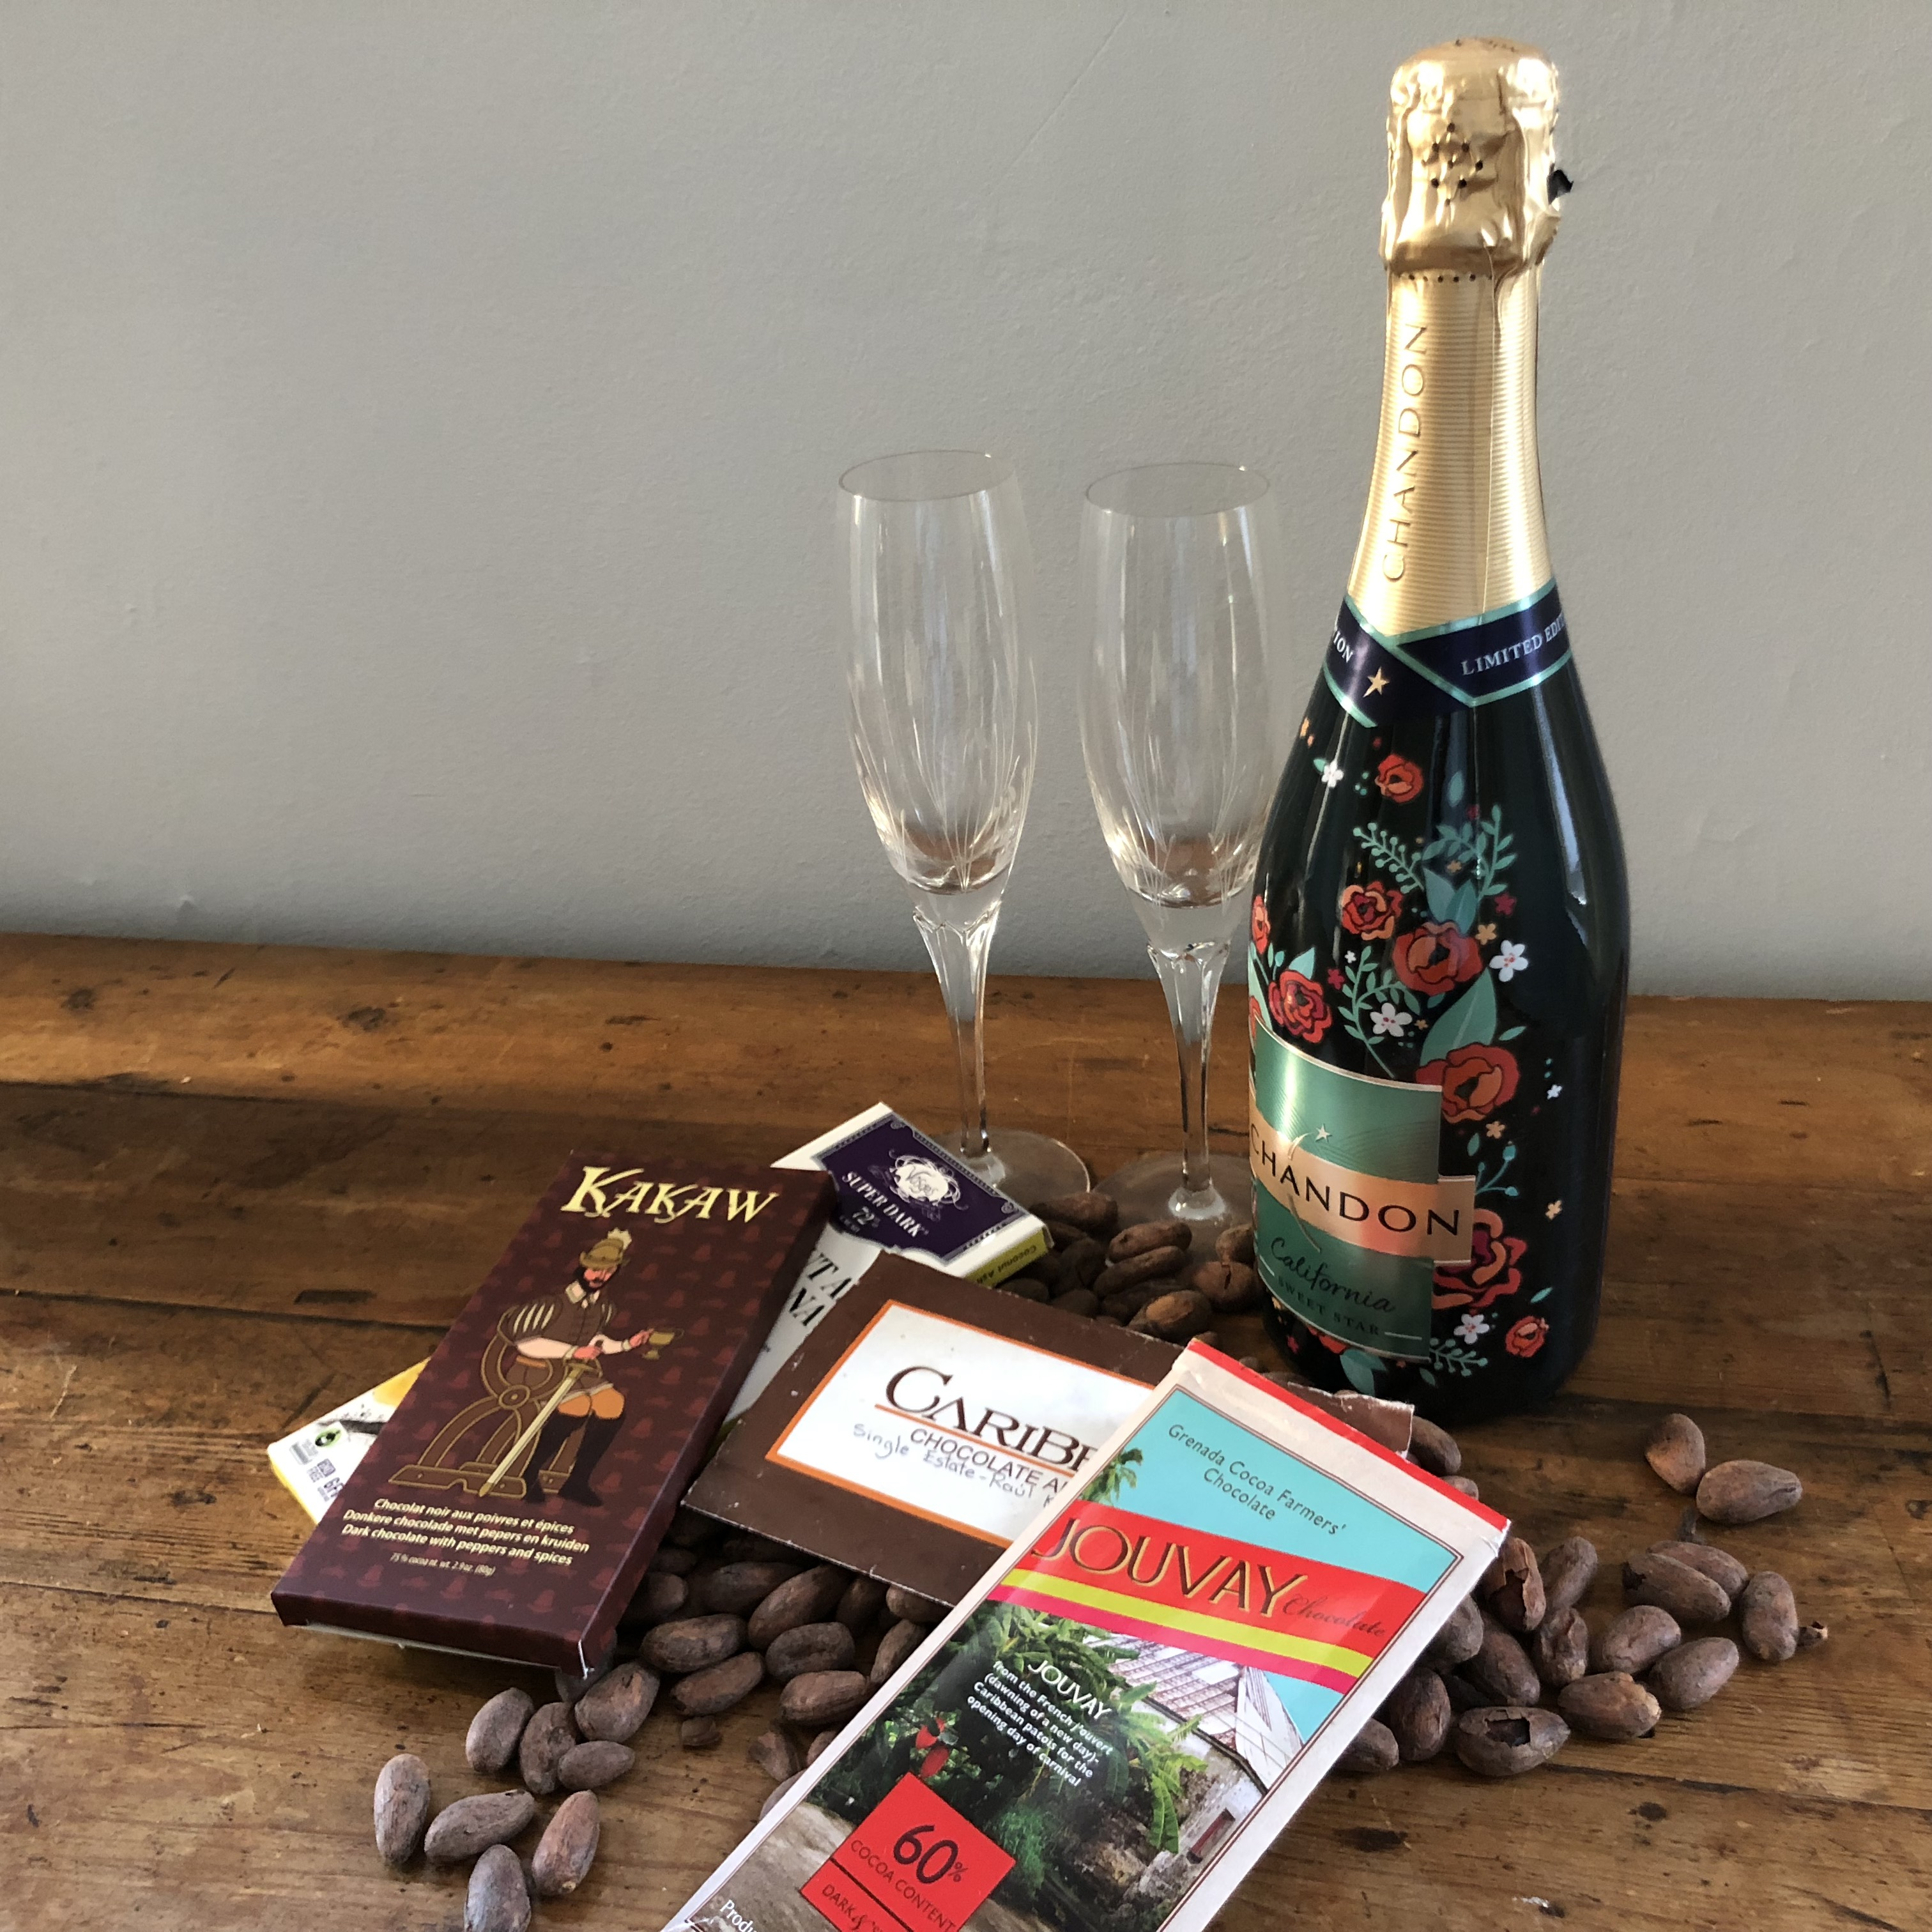 Wine and Chocolate, an adventure in tasting